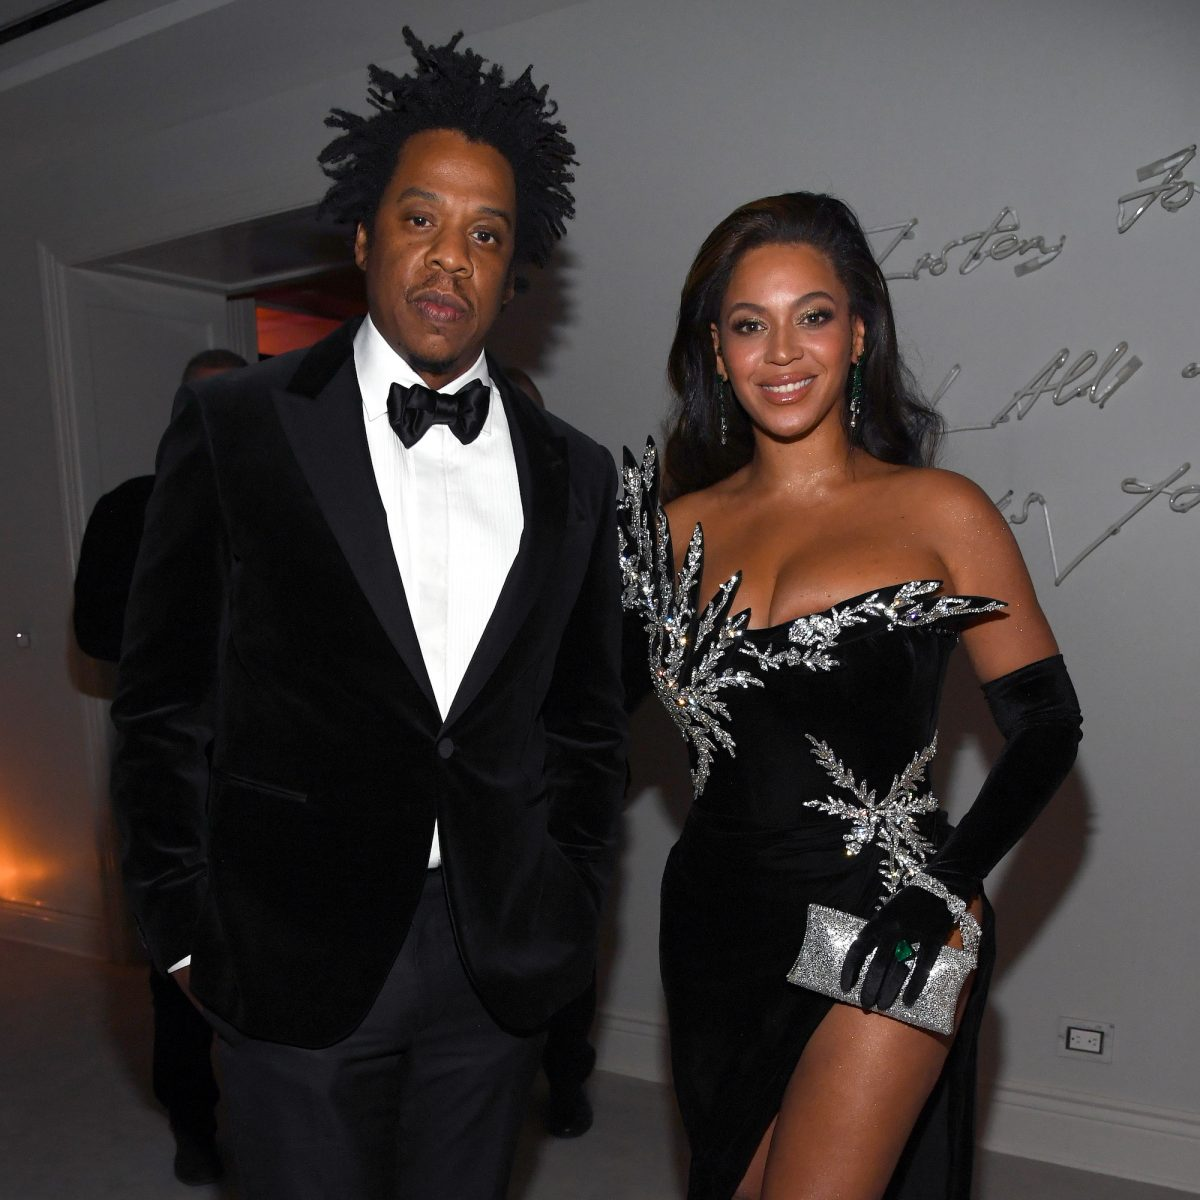 Jay-Z and Beyoncé attending an event